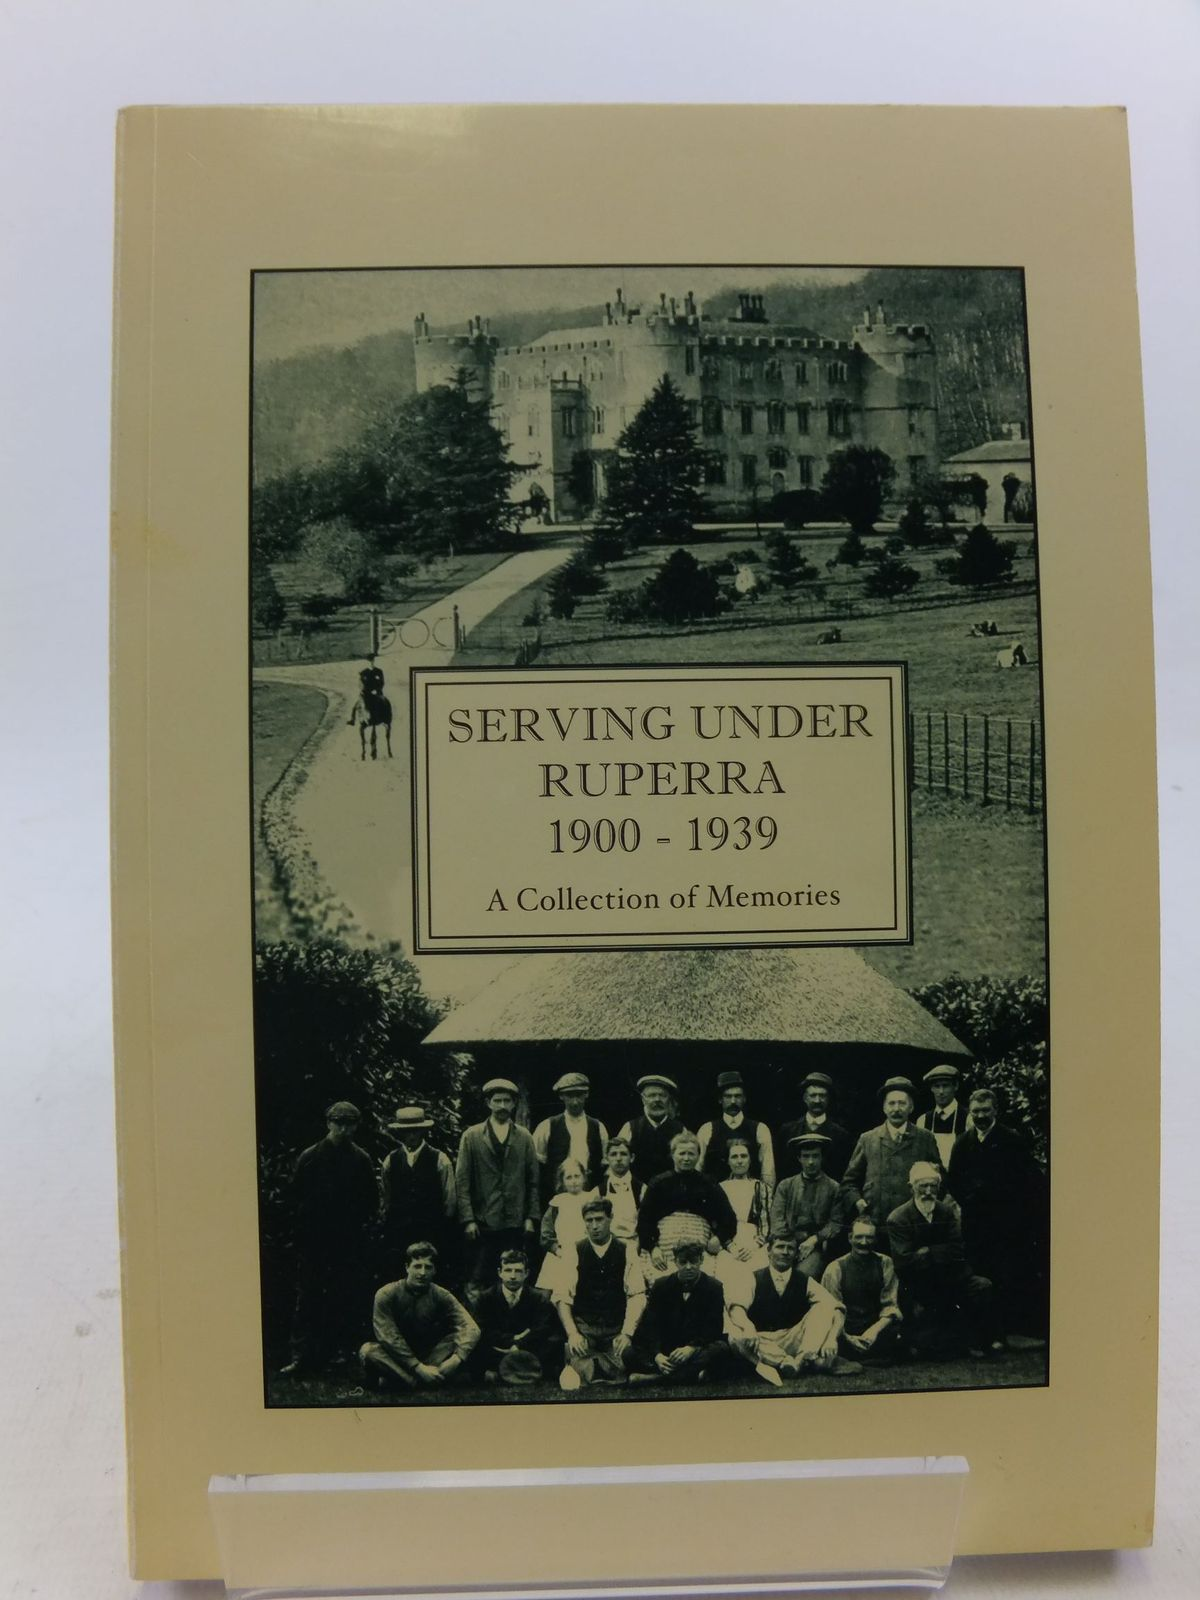 Photo of SERVING UNDER RUPERRA 1900 - 1939 A COLLECTION OF MEMORIES written by Moseley, Pat<br />et al, published by Clarke Printing (STOCK CODE: 2113625)  for sale by Stella & Rose's Books